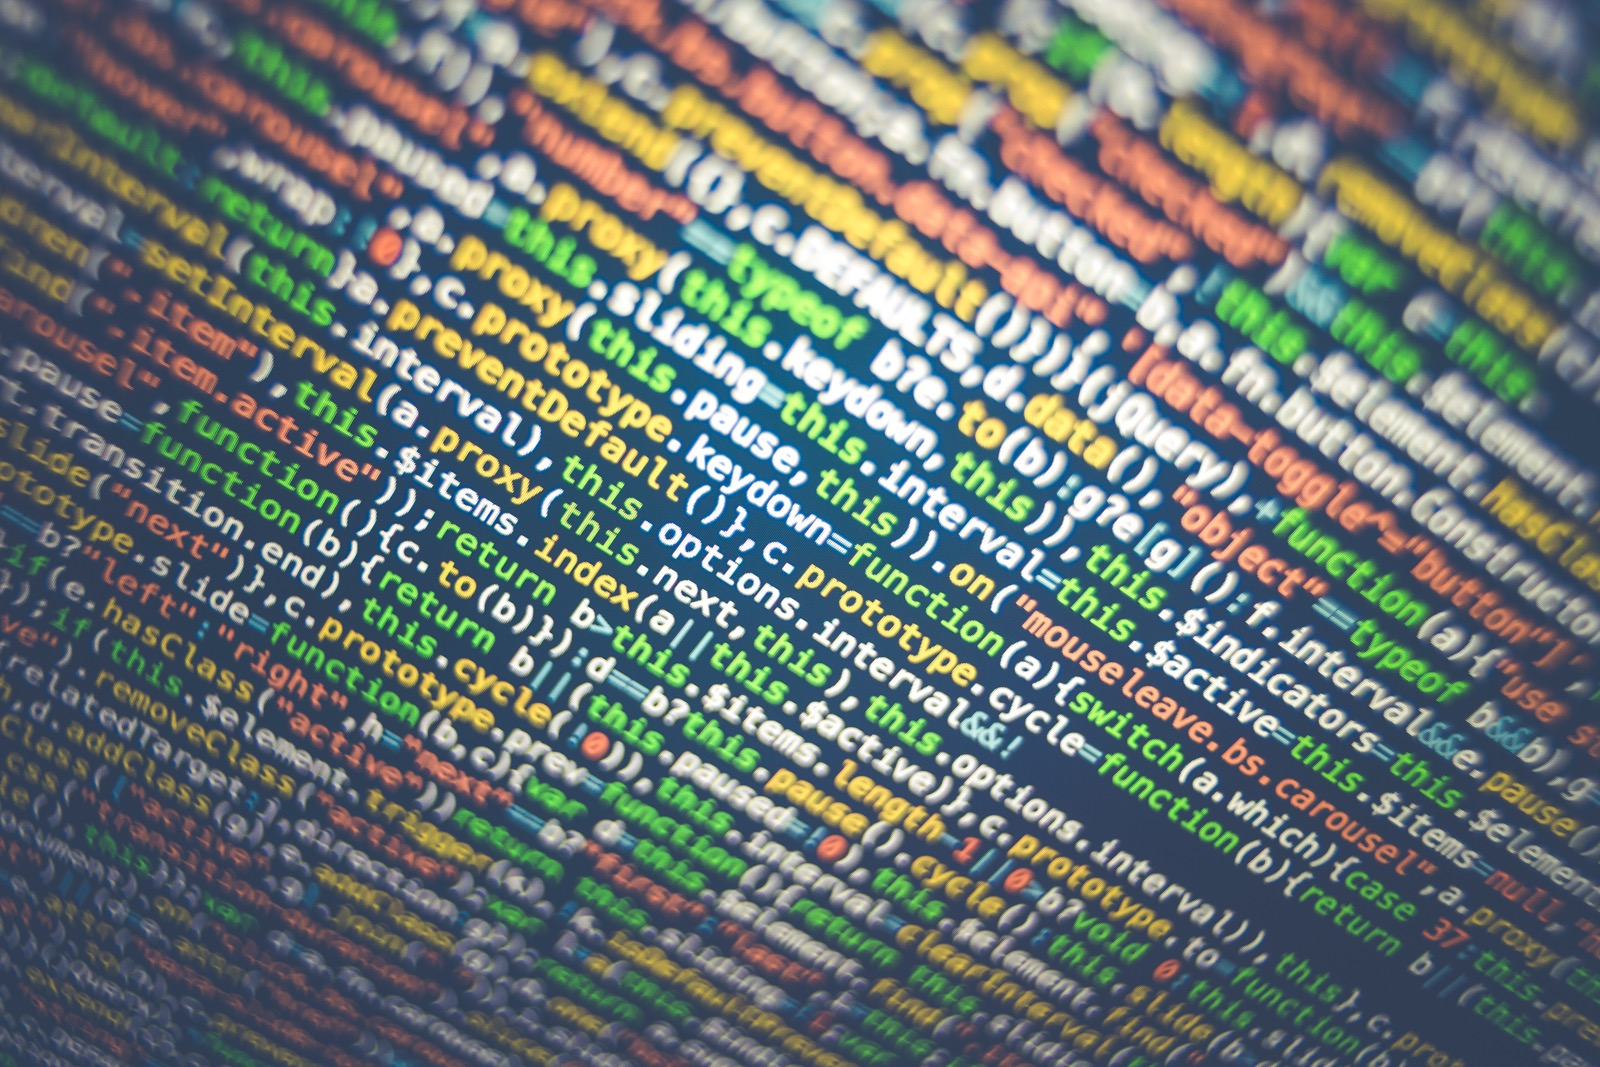 Code representing version control - Photo by Sai Kiran Anagani on Unsplash